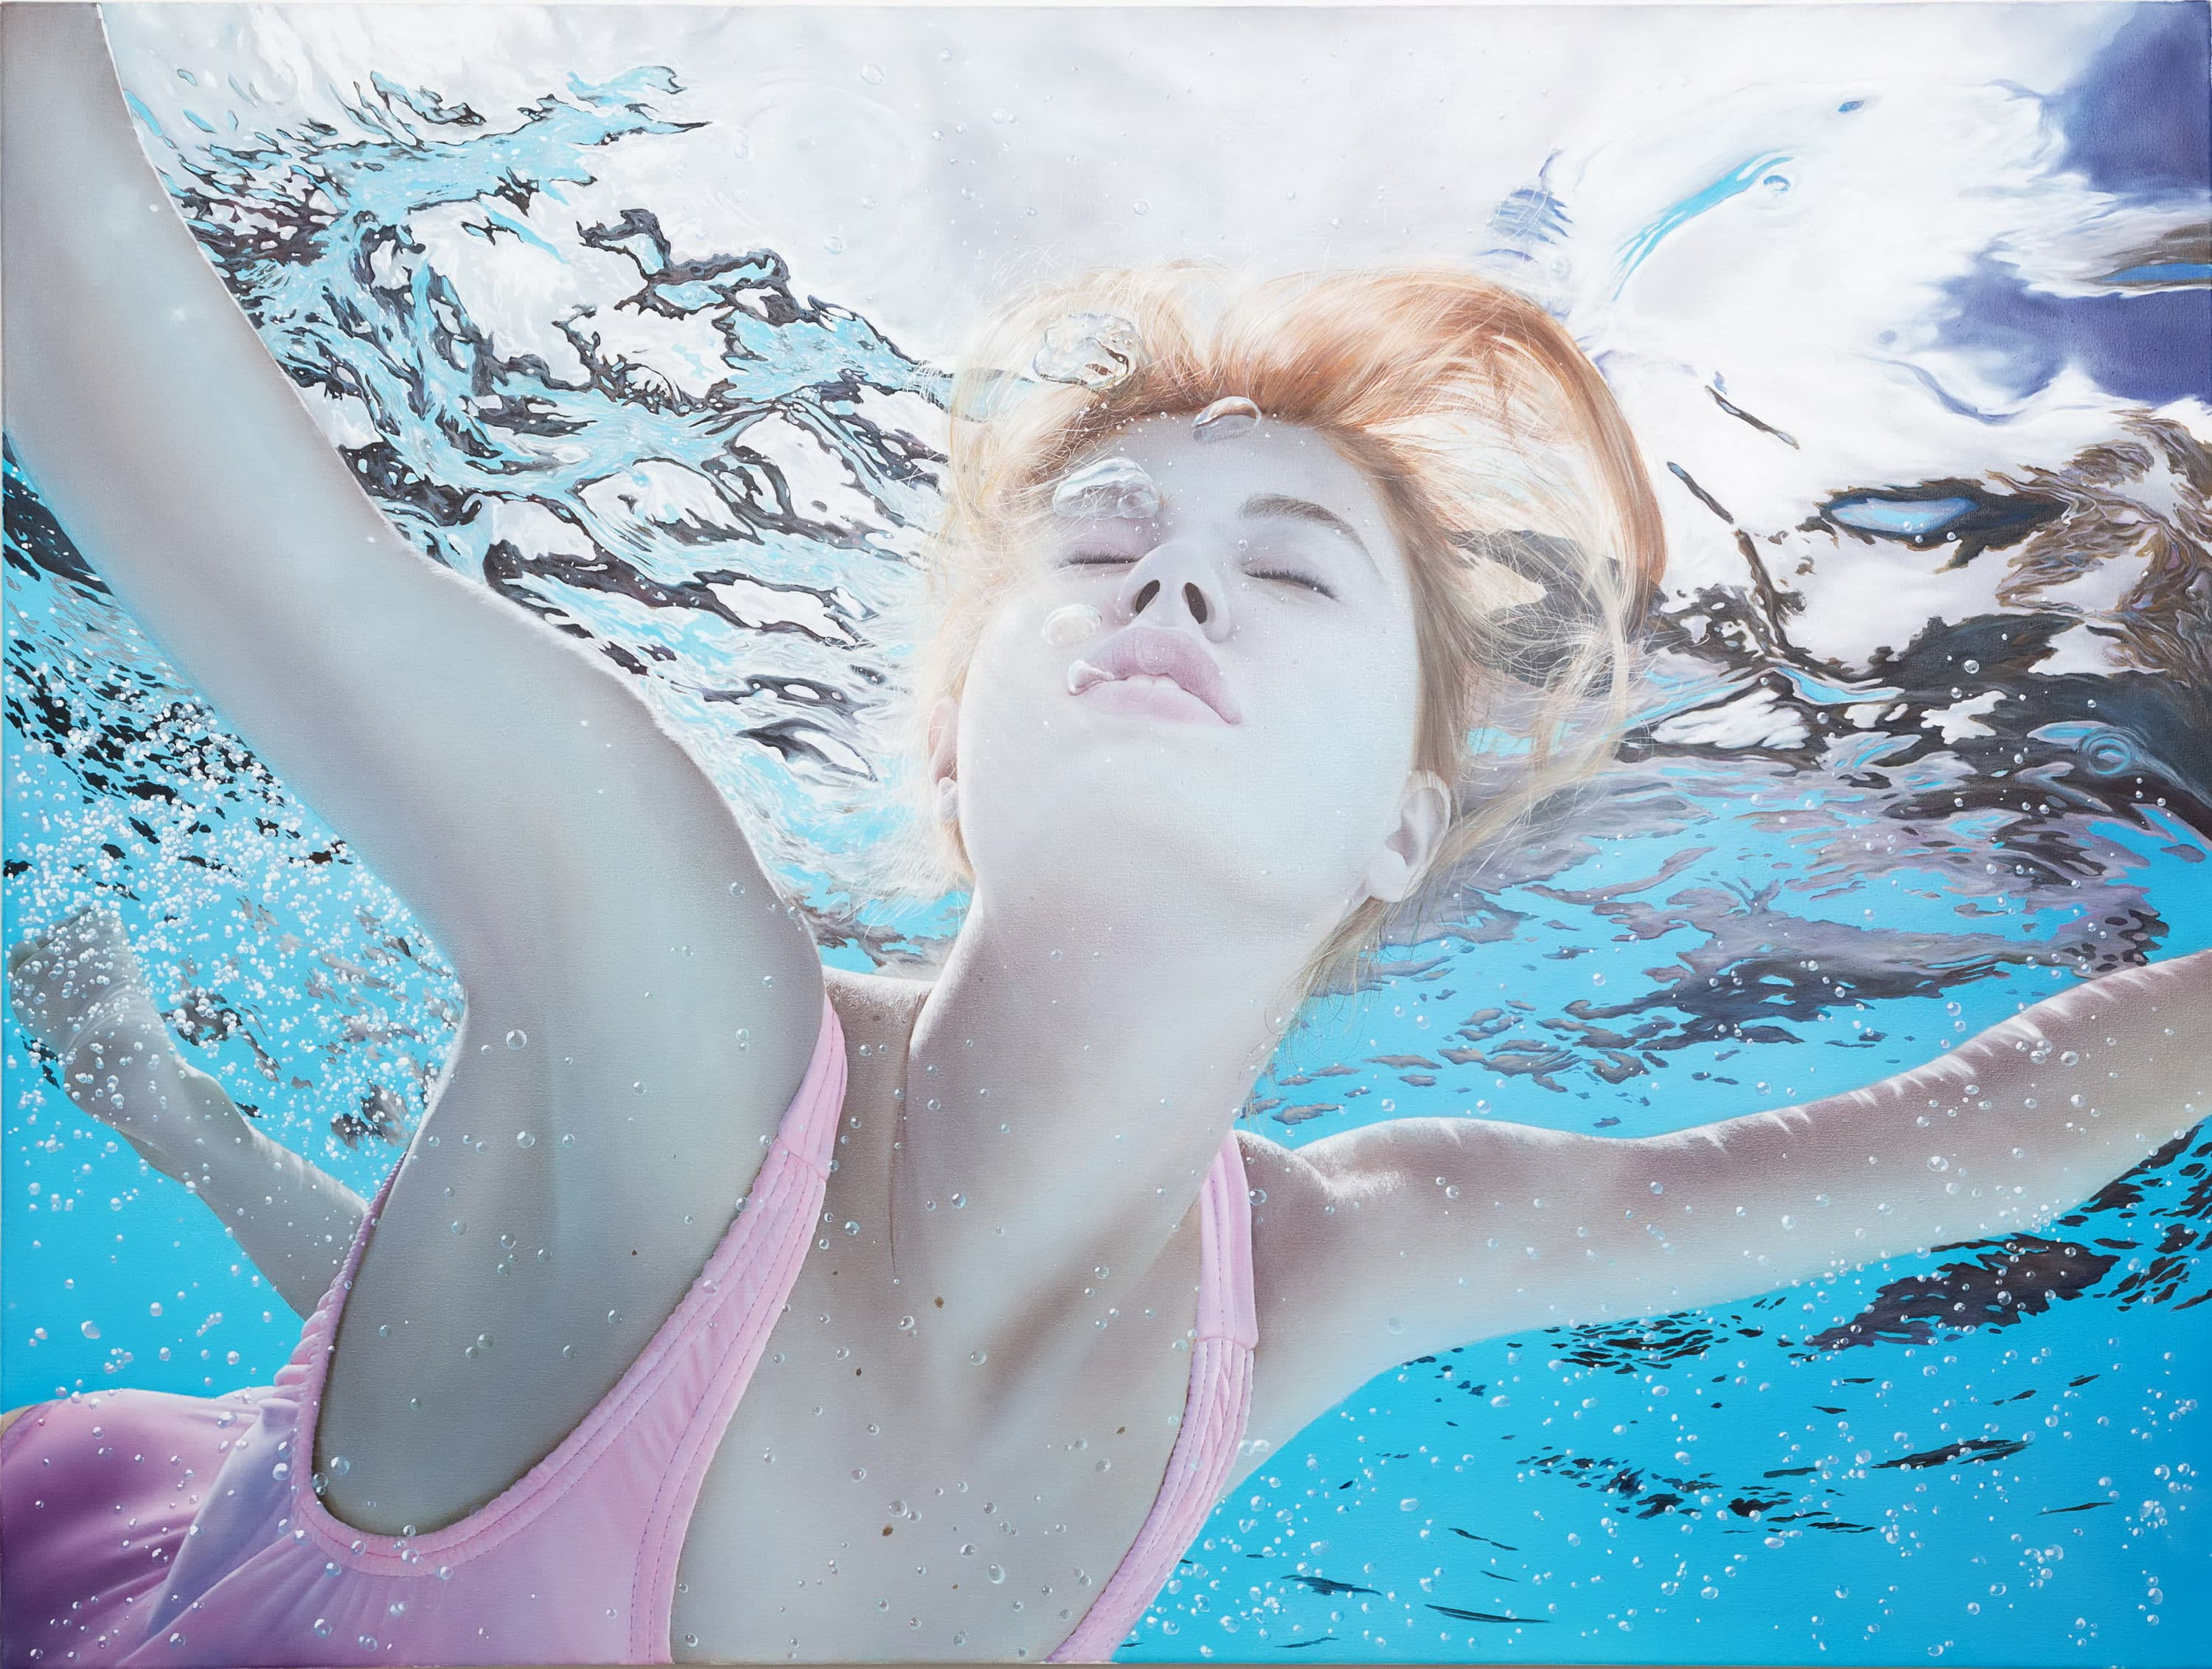 Sergey Piskunov - creator of realistic underwater paintings